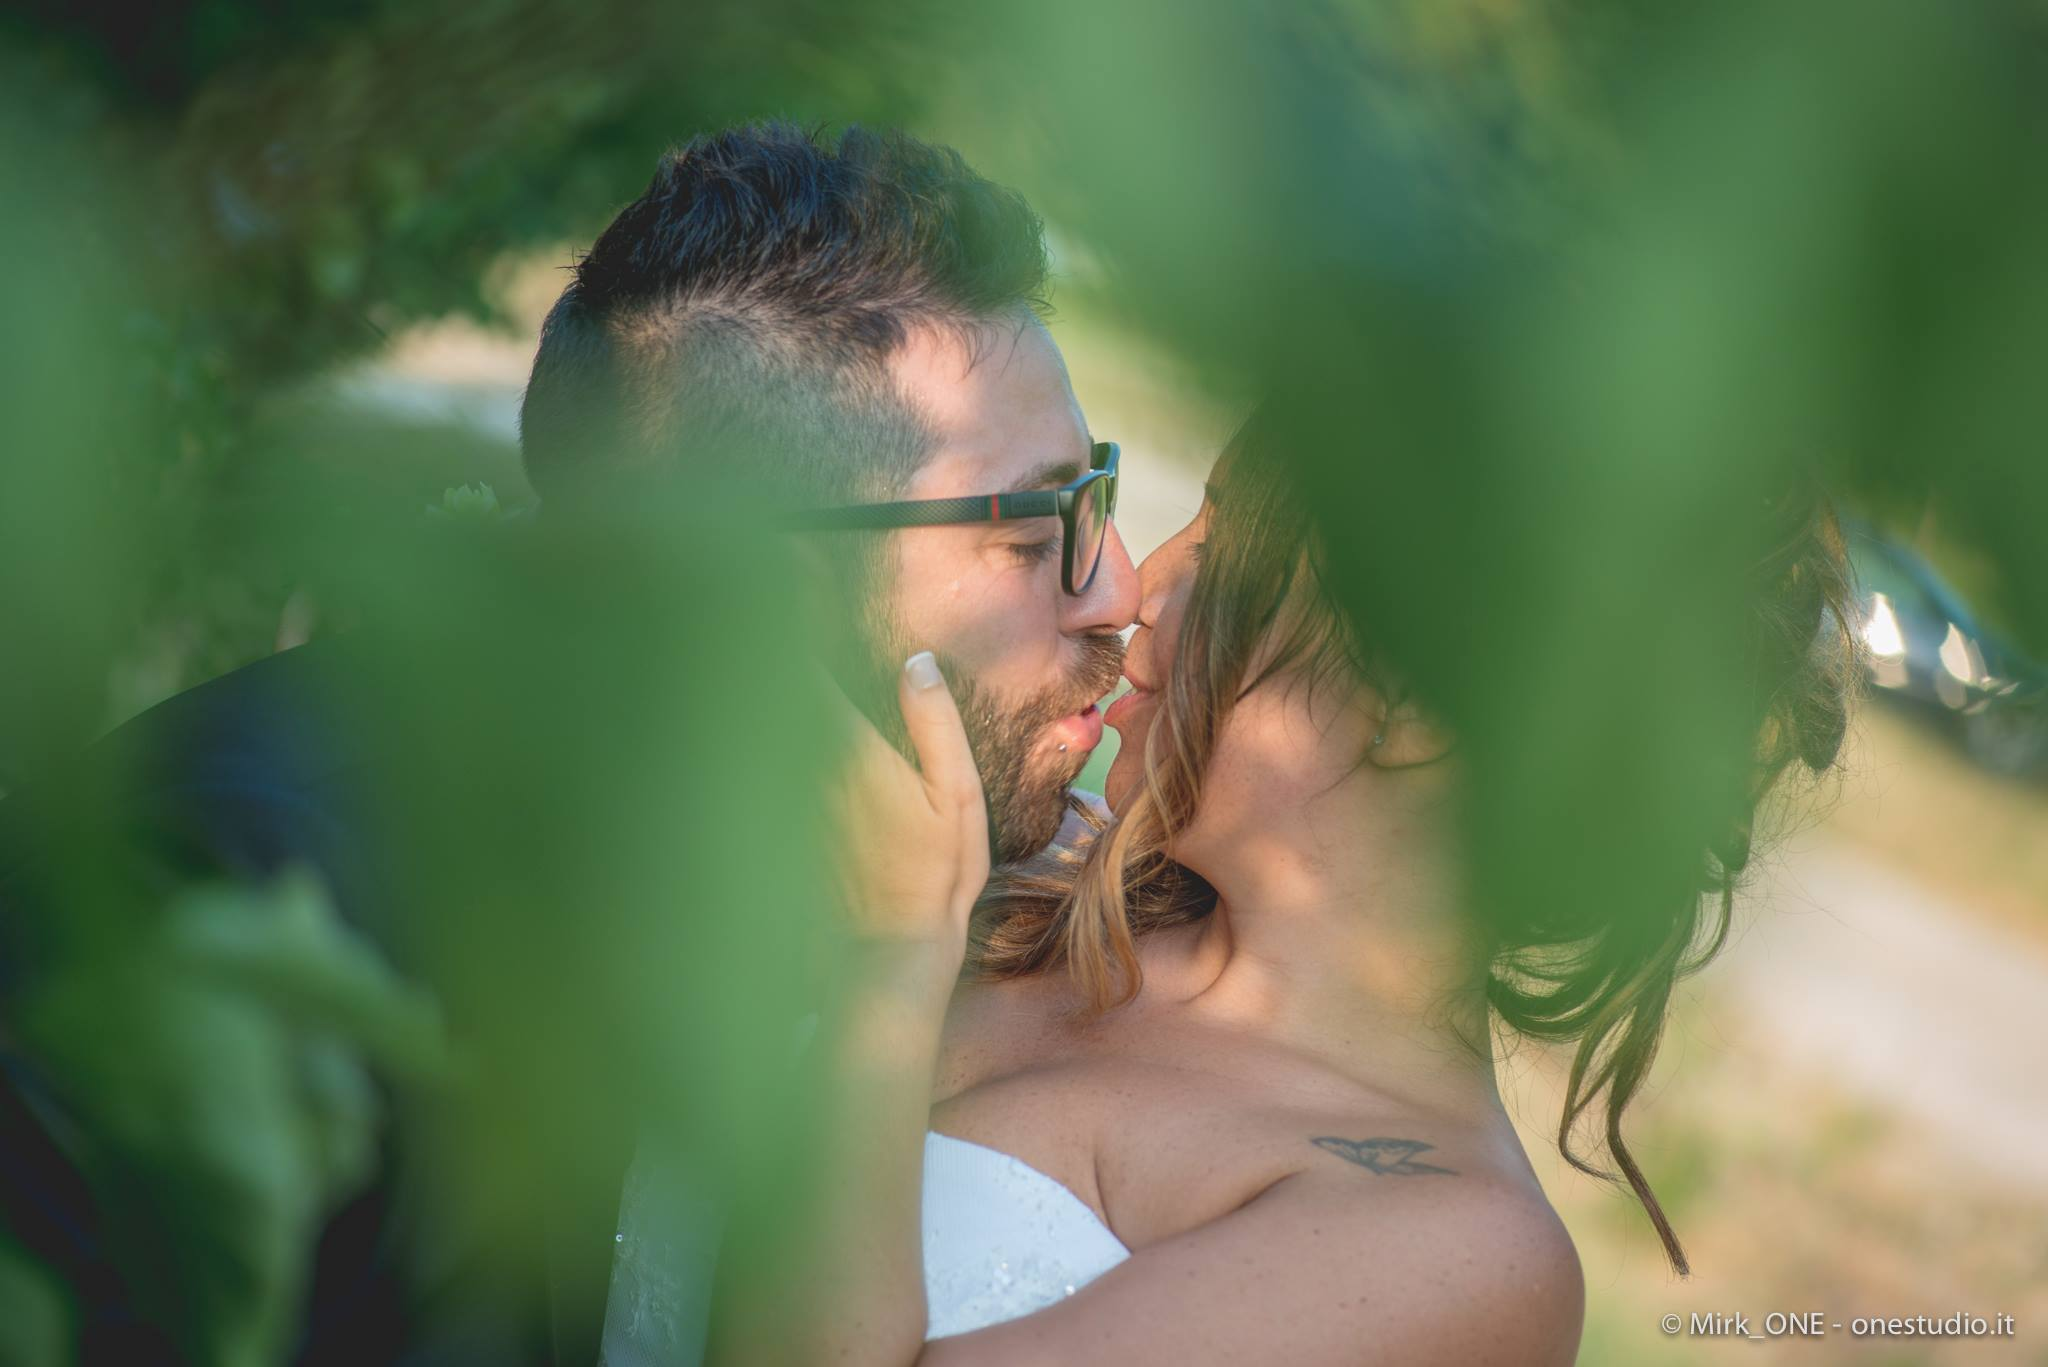 http://lnx.mirkone.it/wp-content/uploads/2015/07/mirk_ONE-fotografo-matrimonio-00822.jpg